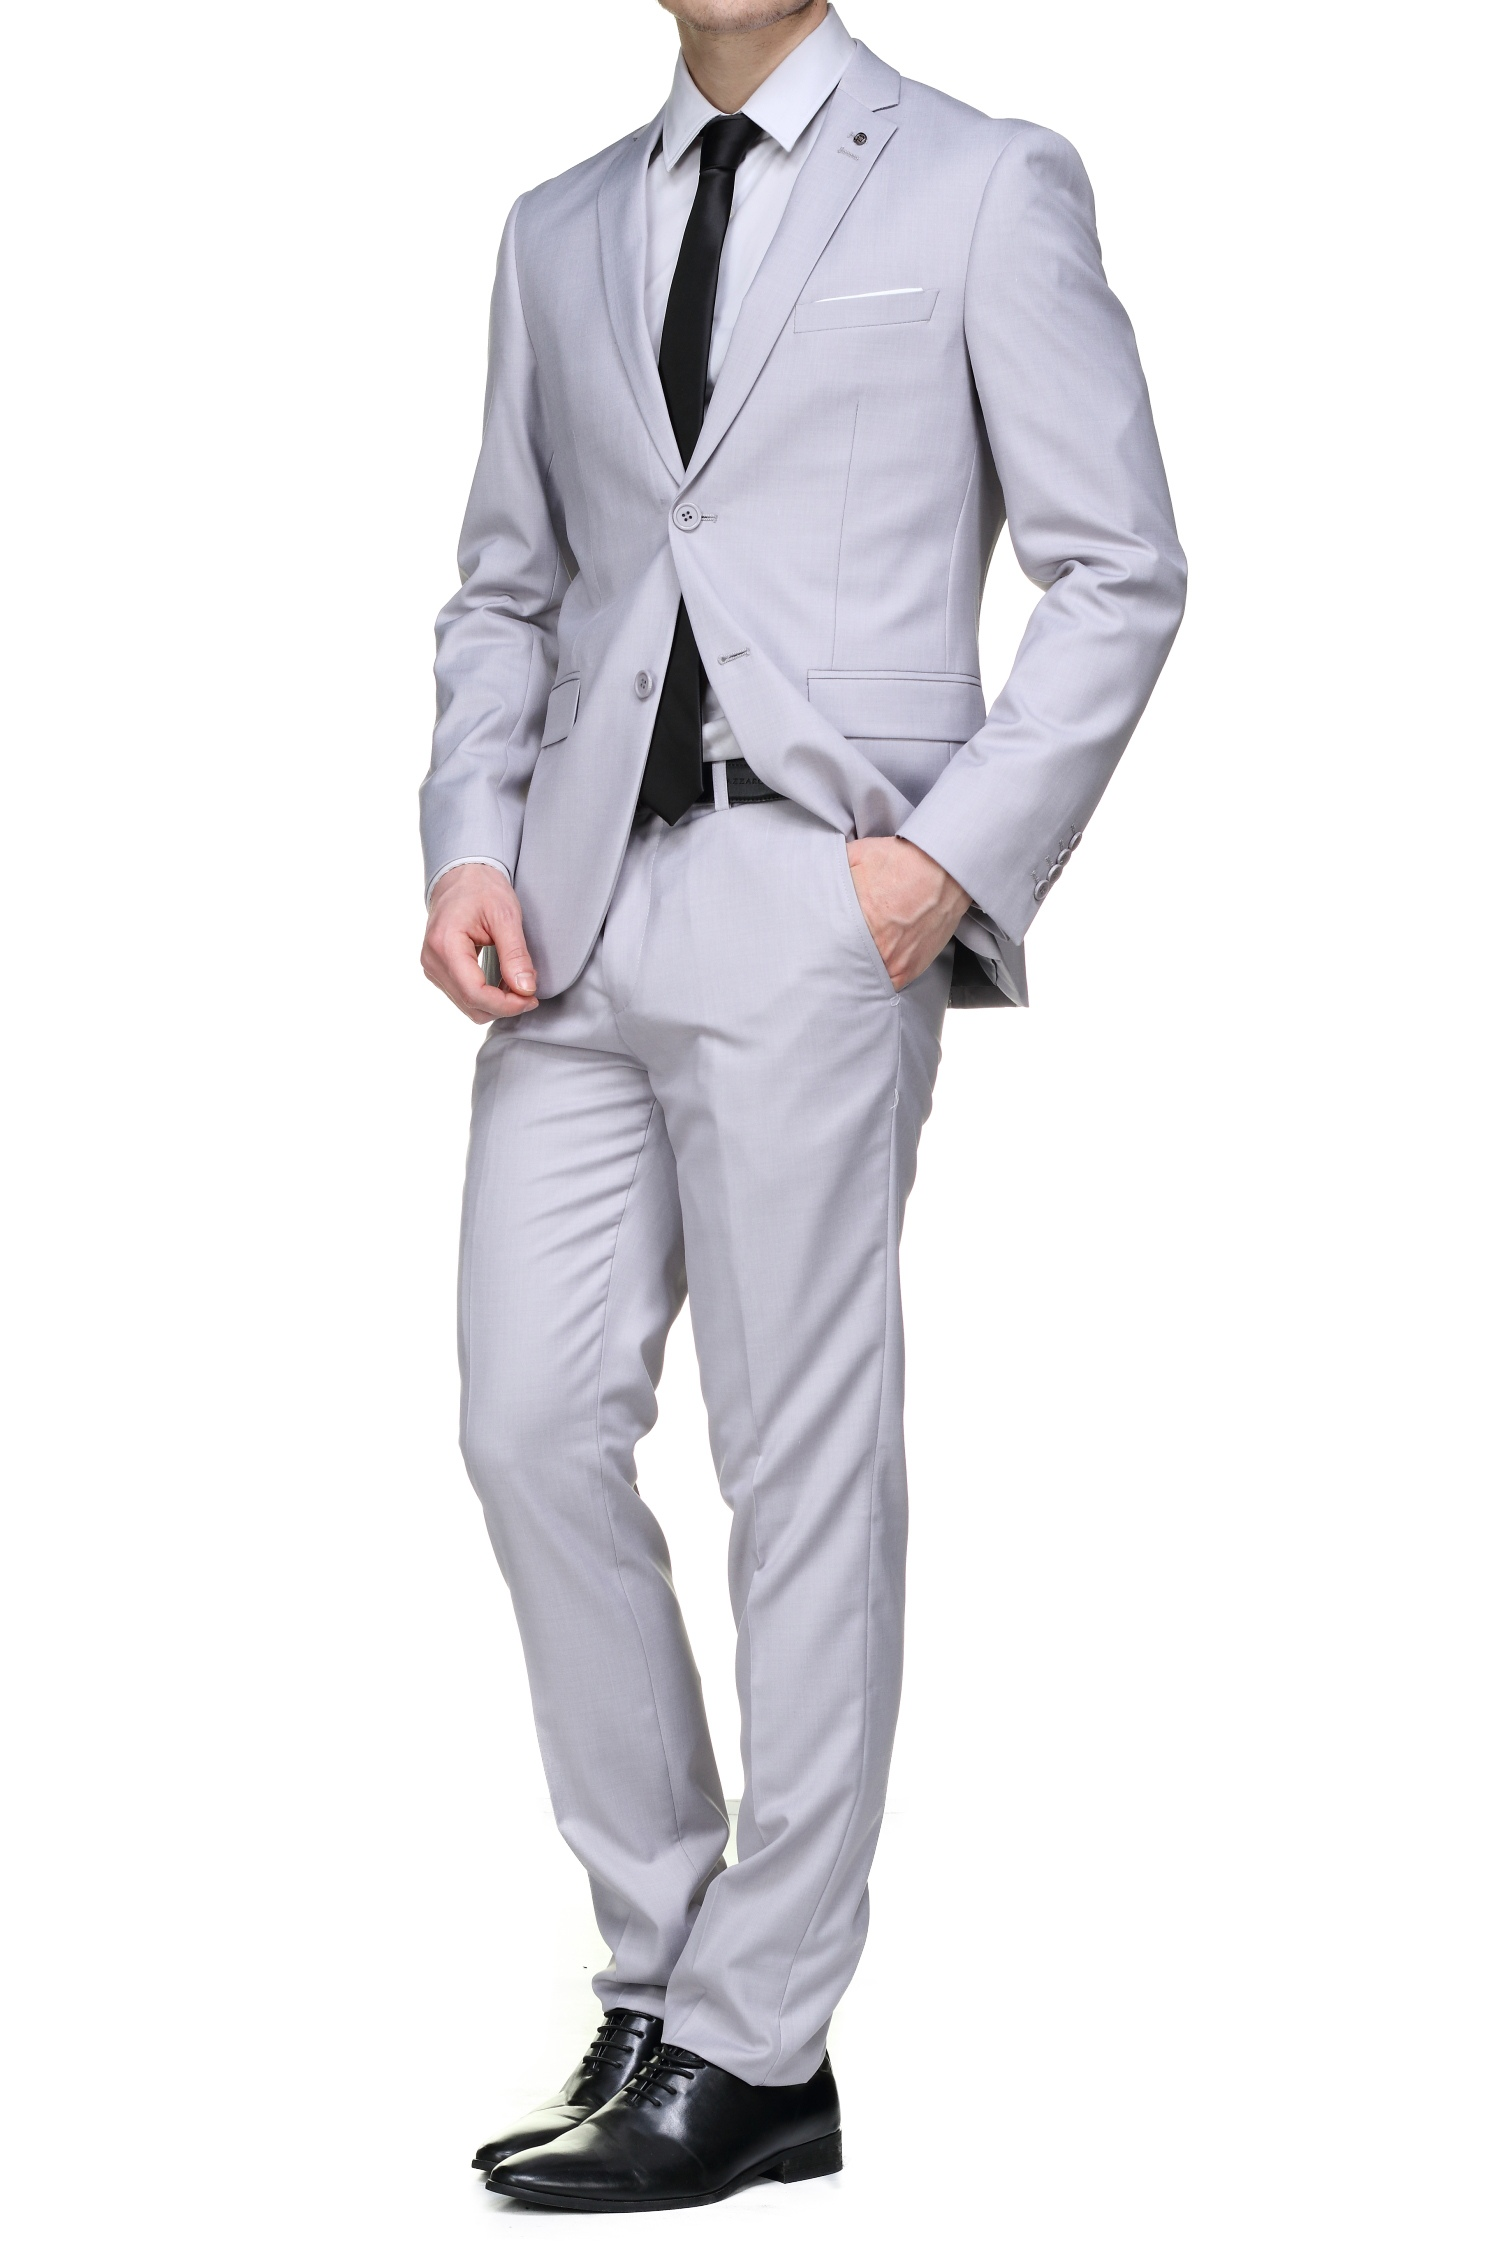 http://www.leadermode.com/166034/jean-louis-scherrer-sch054-jack-uni-light-grey.jpg